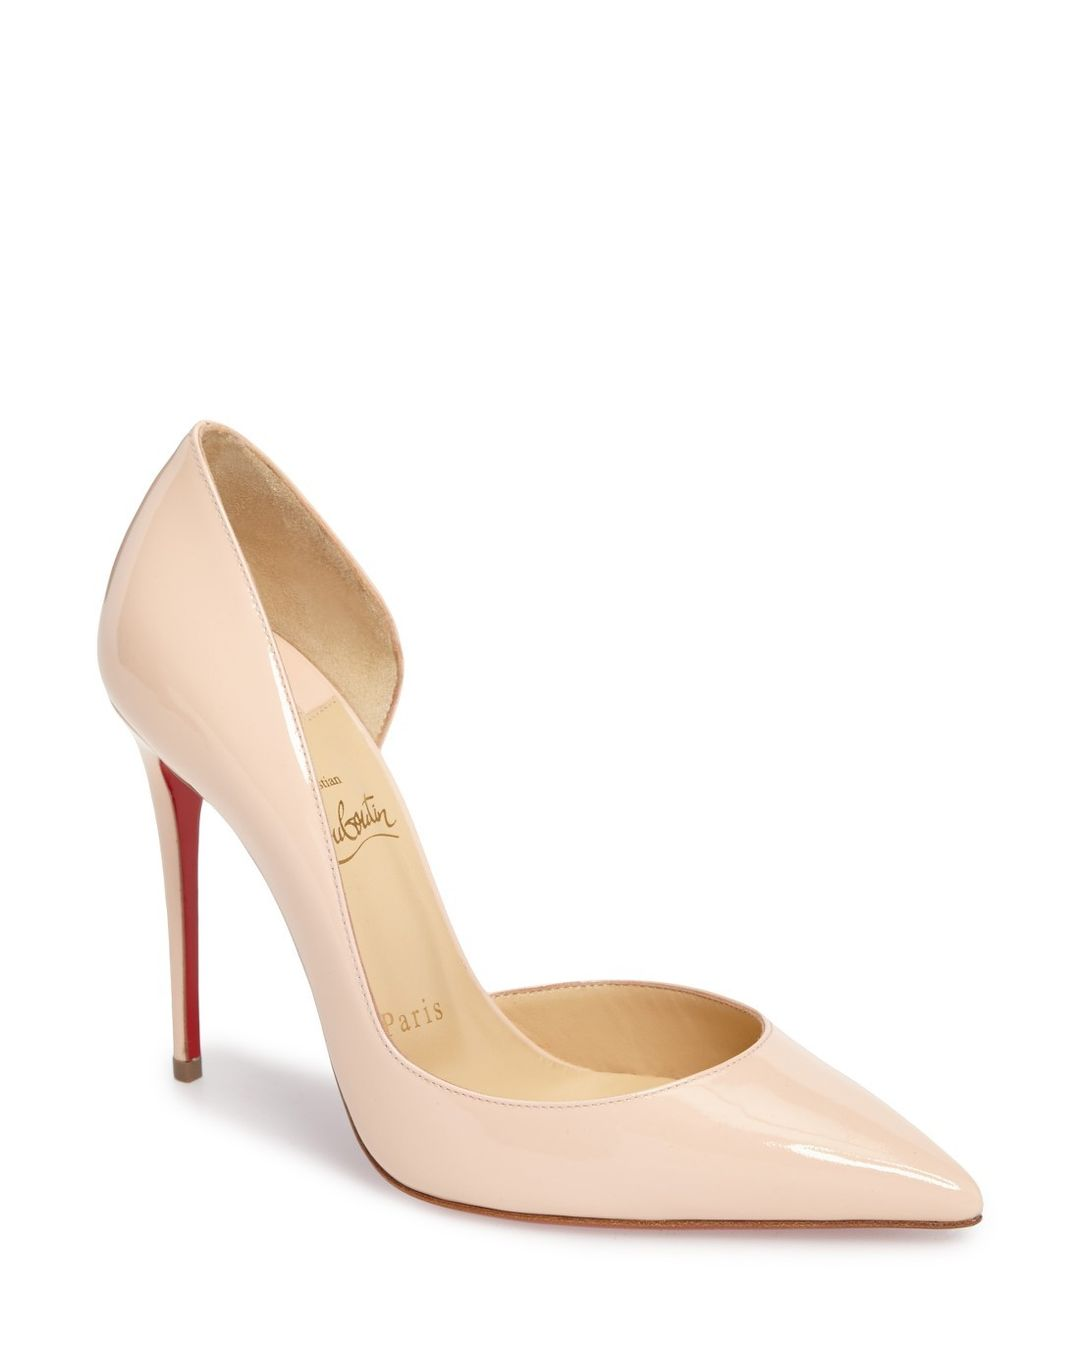 9ad7716aaa8 Christian Louboutin Iriza 100 Reviews